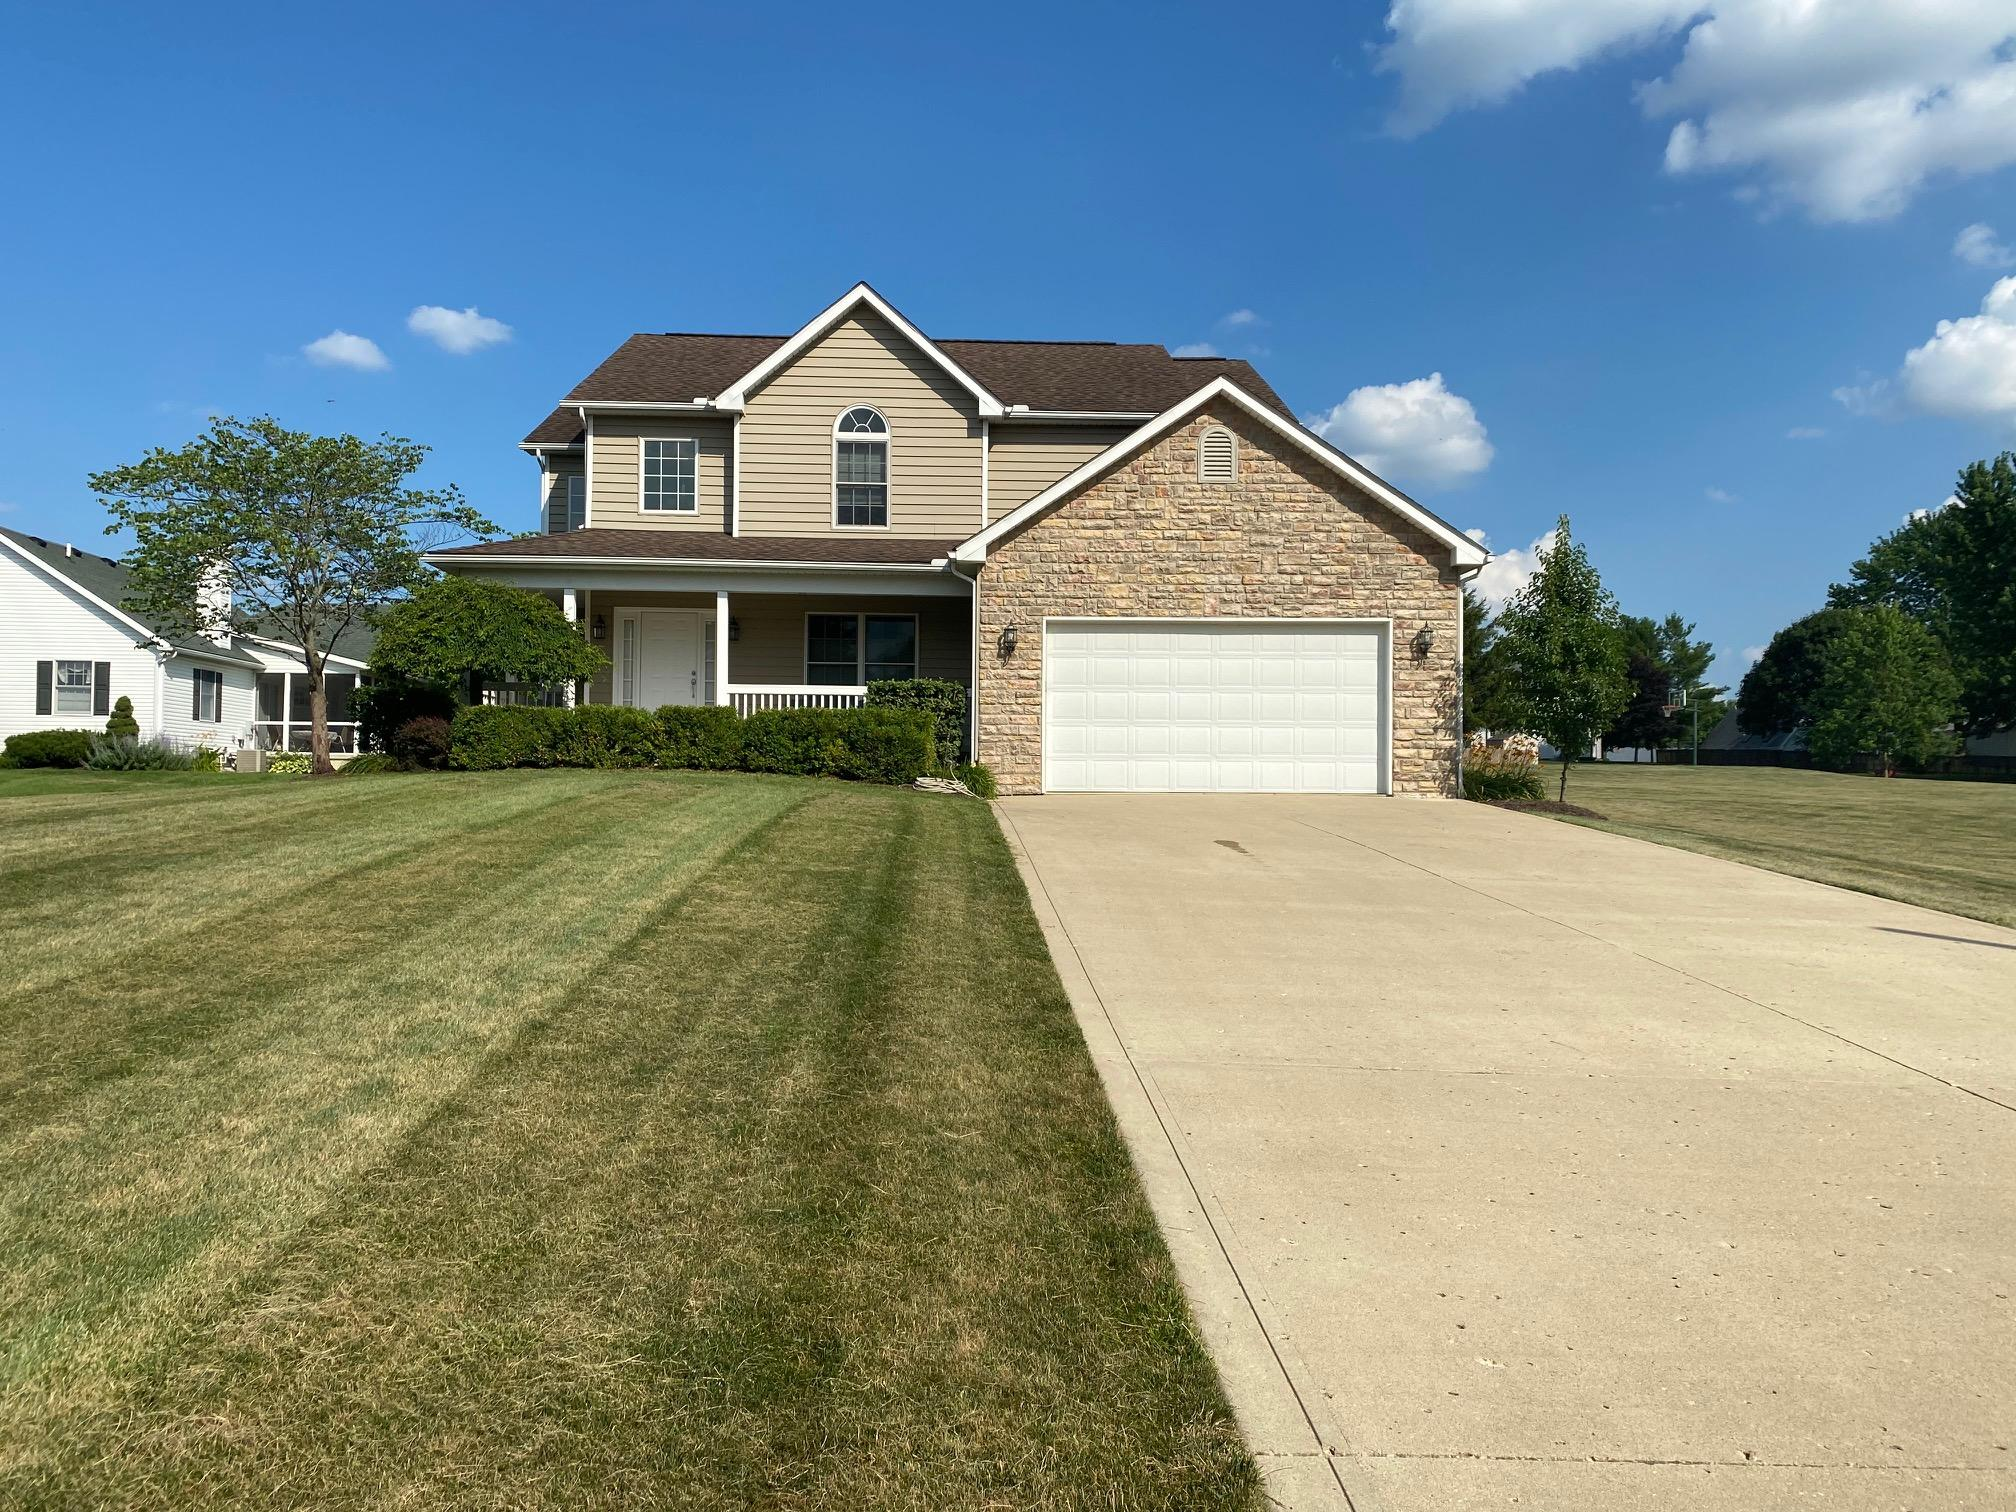 1915 E Choctaw Dr London, OH